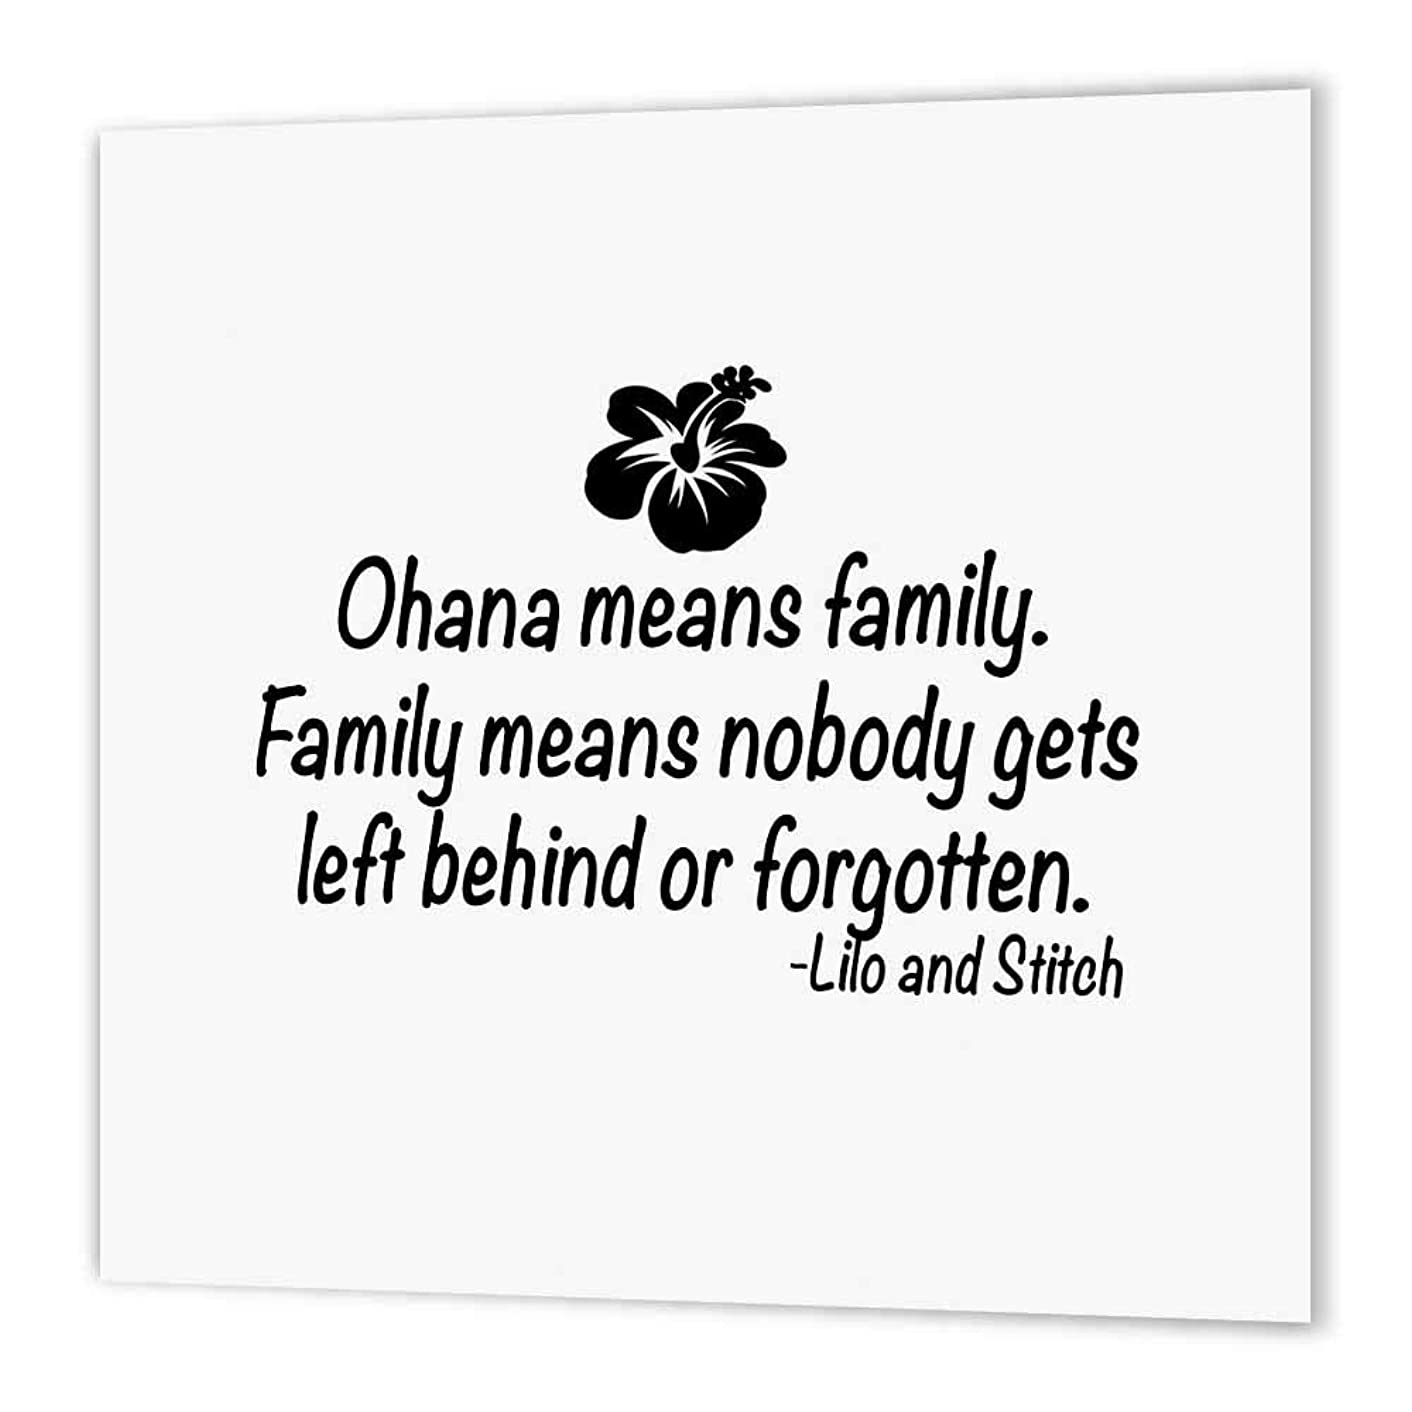 3dRose ht_163985_2 Ohana Means Family-Iron on Heat Transfer Paper for White Material, 6 by 6-Inch